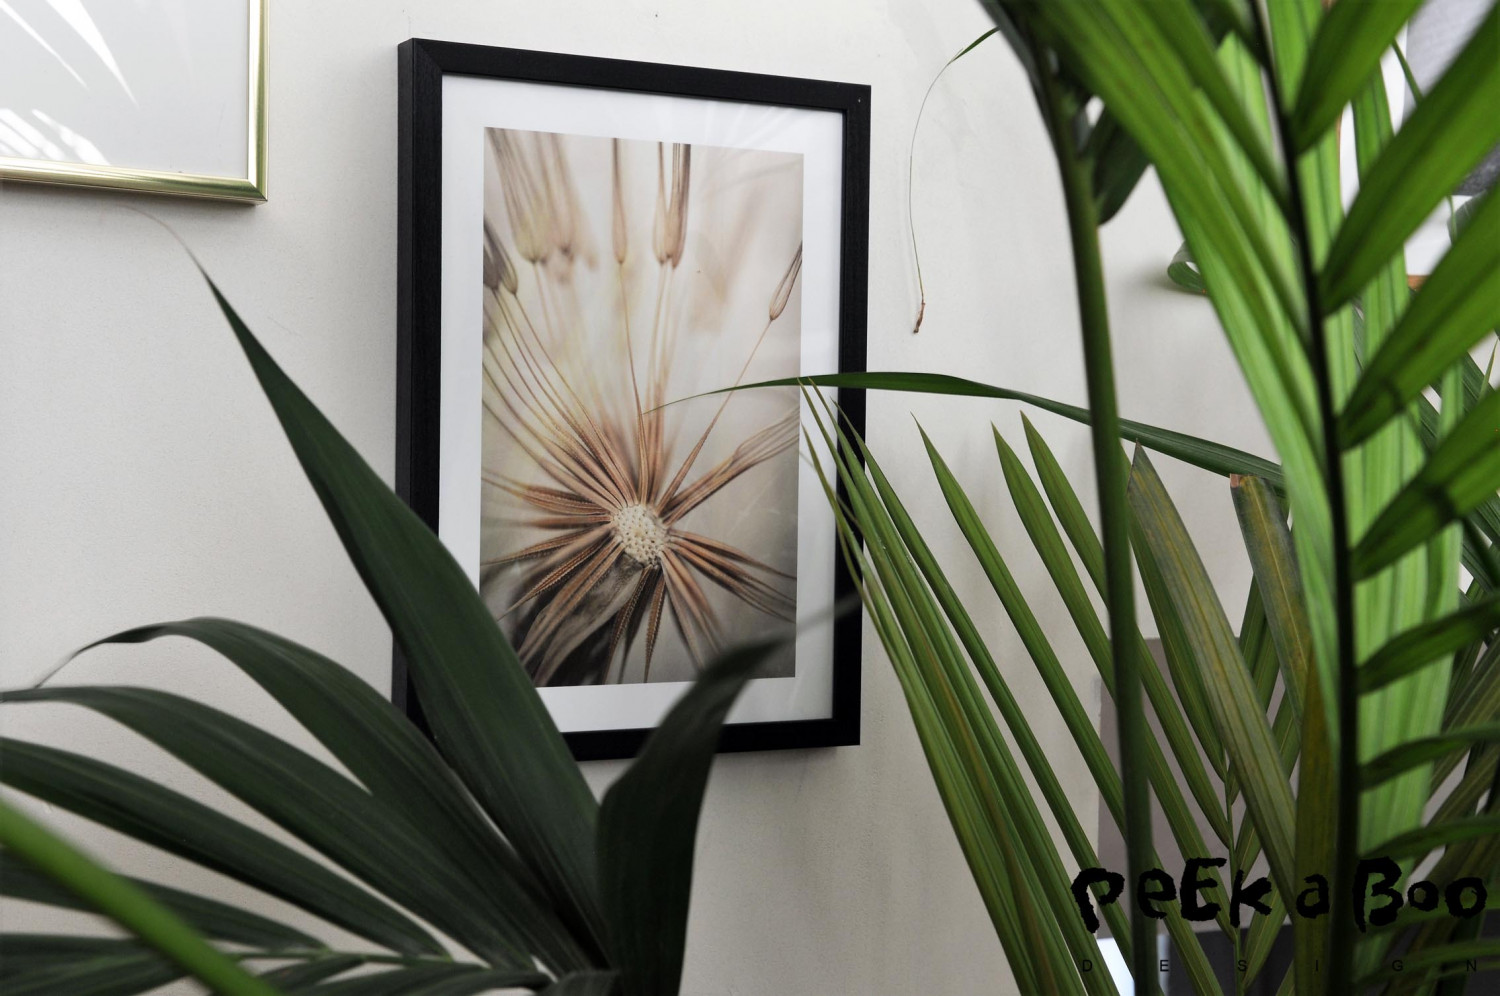 My living room is like a botanic garden, but I can't get enough green plants so I have also chosen a botanical poster from Desenio.